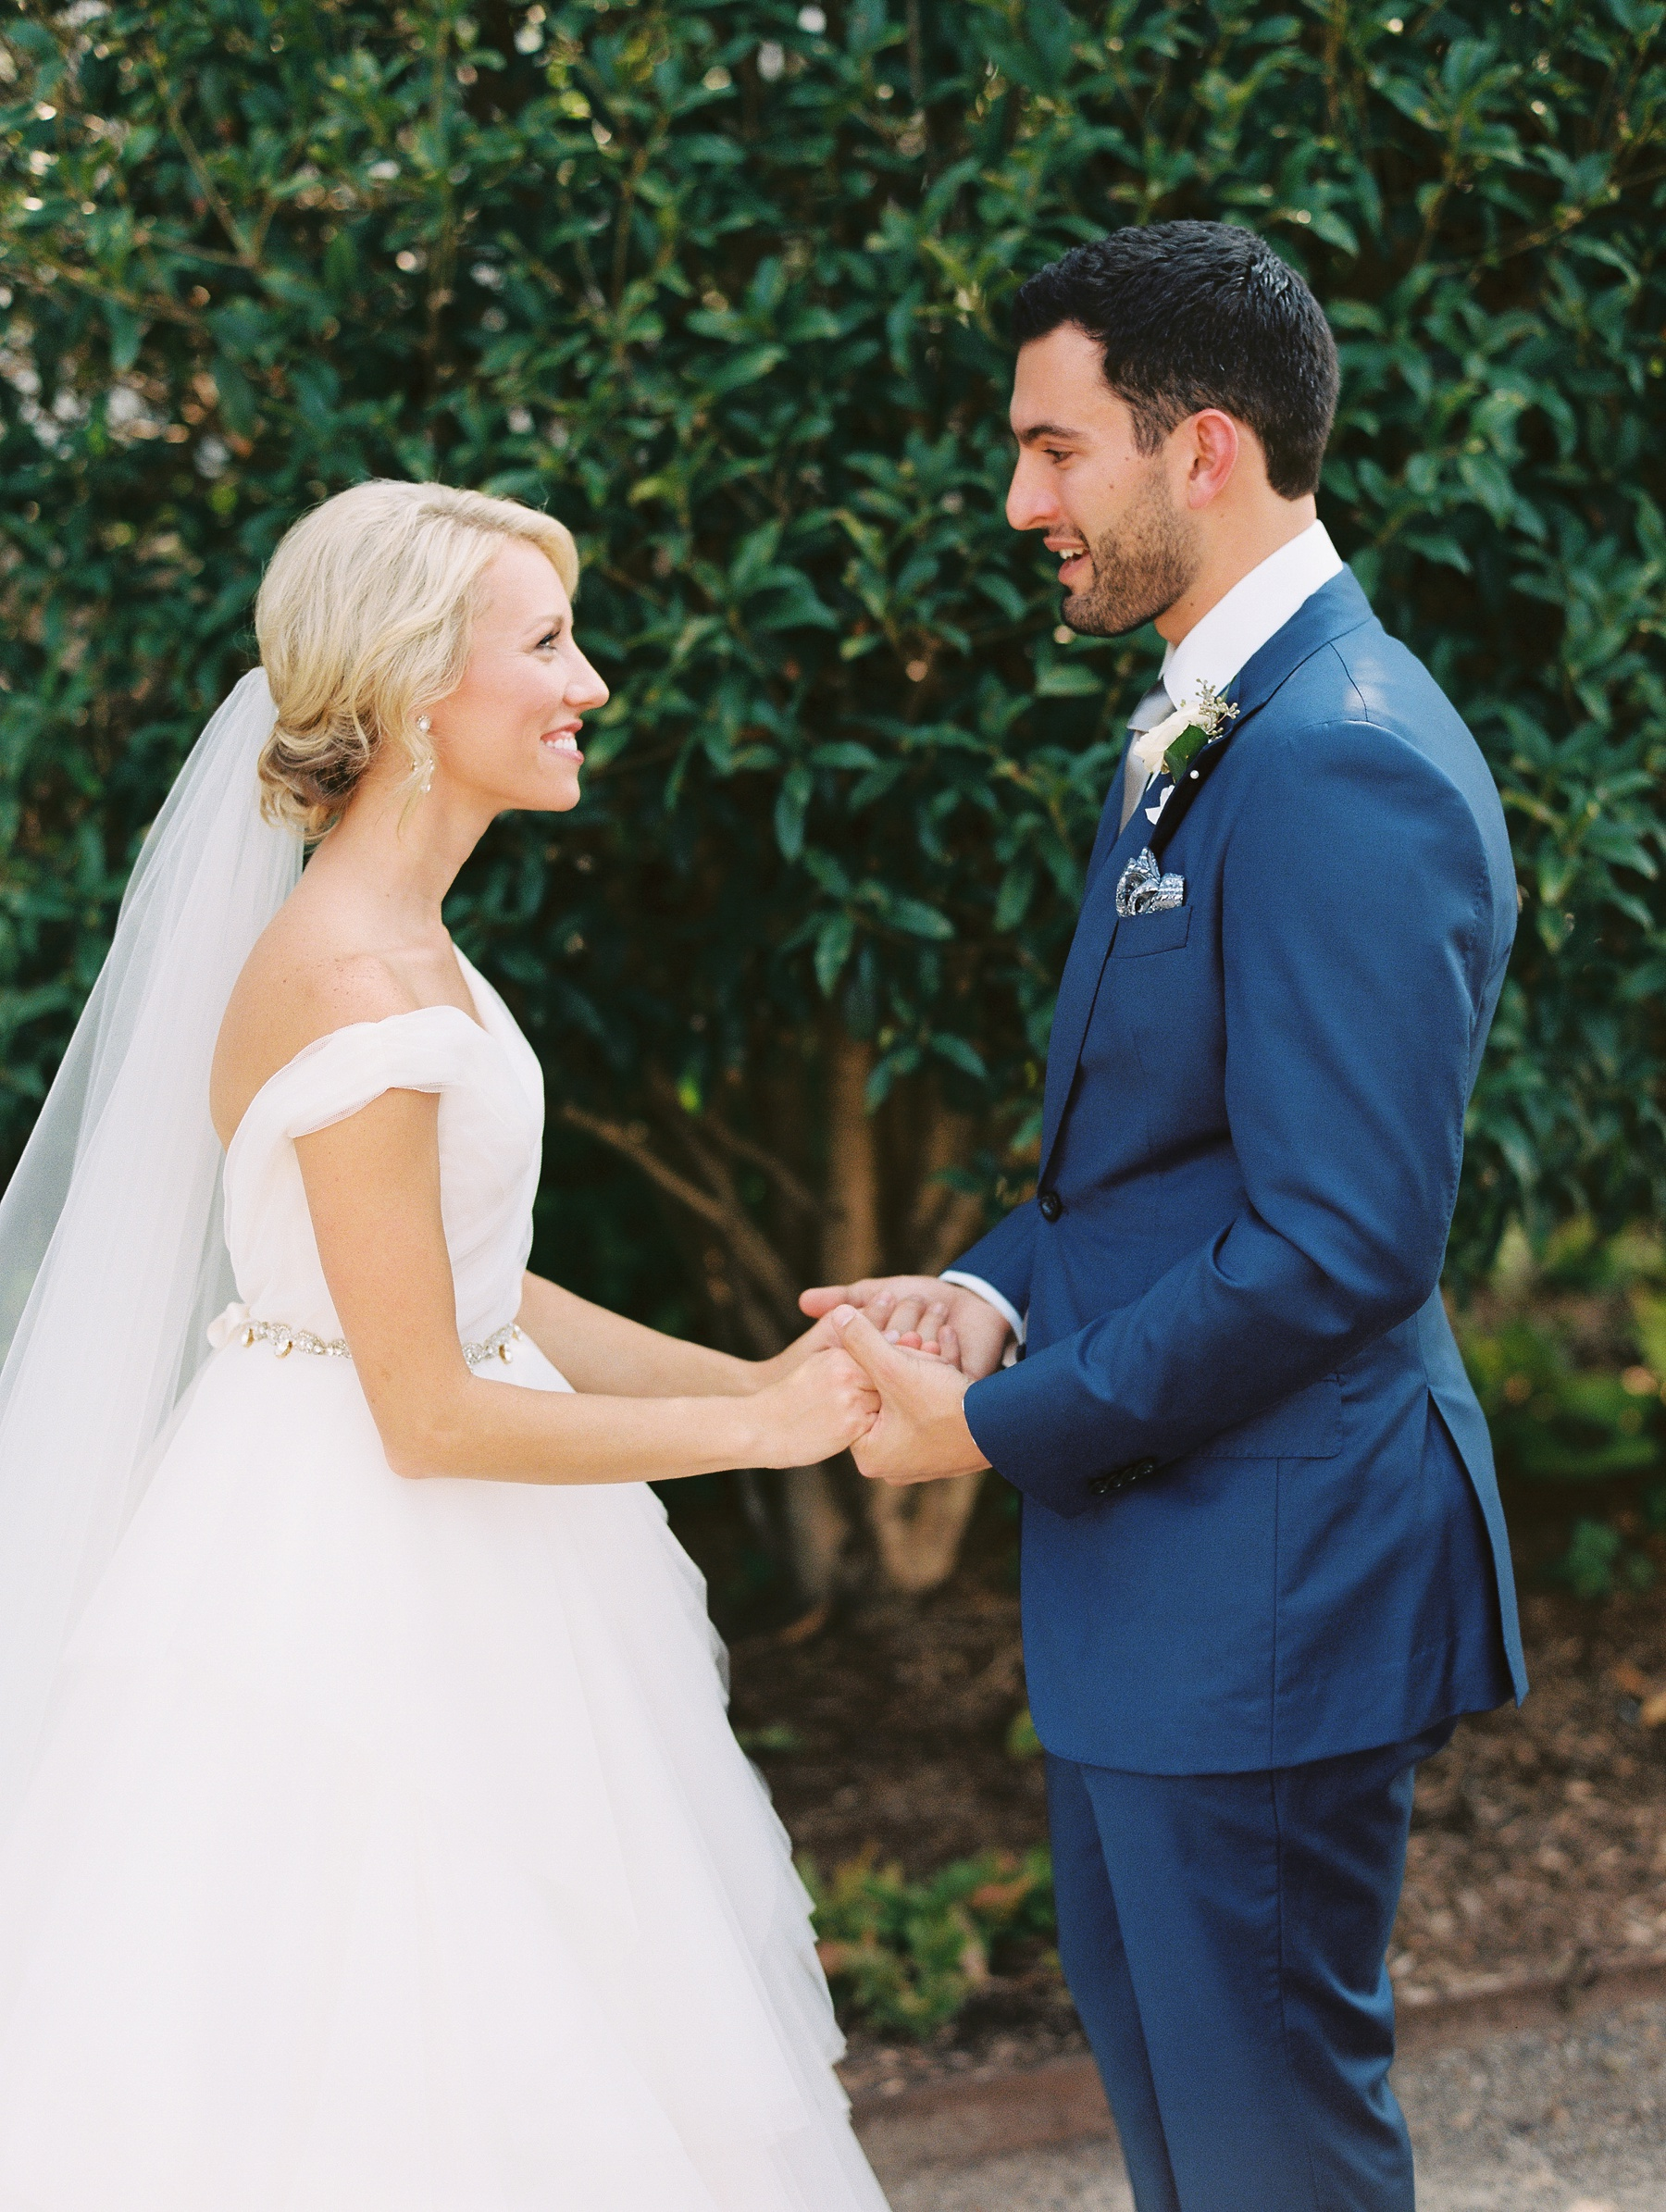 CMT Music City Jessica Mack and Andreas Plackis Wedding_1450.jpg